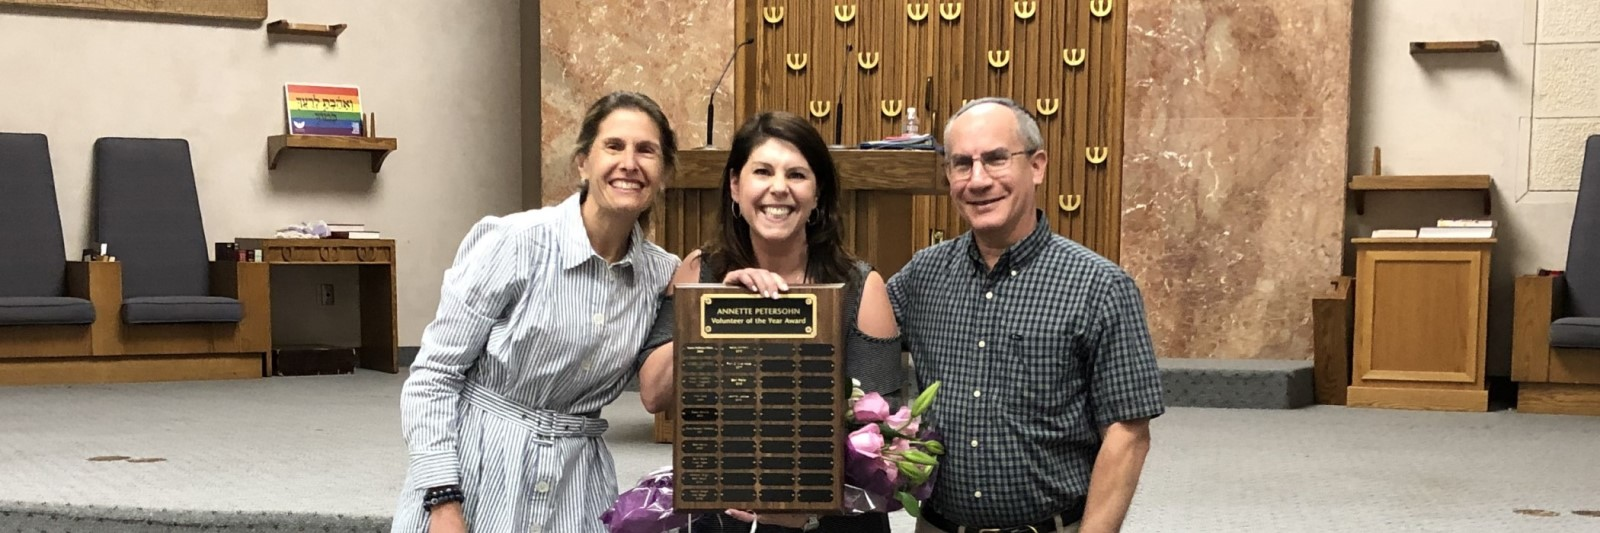 """<a href=""""/about-us""""                                     target="""""""">                                                                 <span class=""""slider_title"""">                                     Mazal Tov Jen Jacobs                                </span>                                                                 </a>                                                                                                                                                                                       <span class=""""slider_description"""">Volunteer of the Year</span>"""